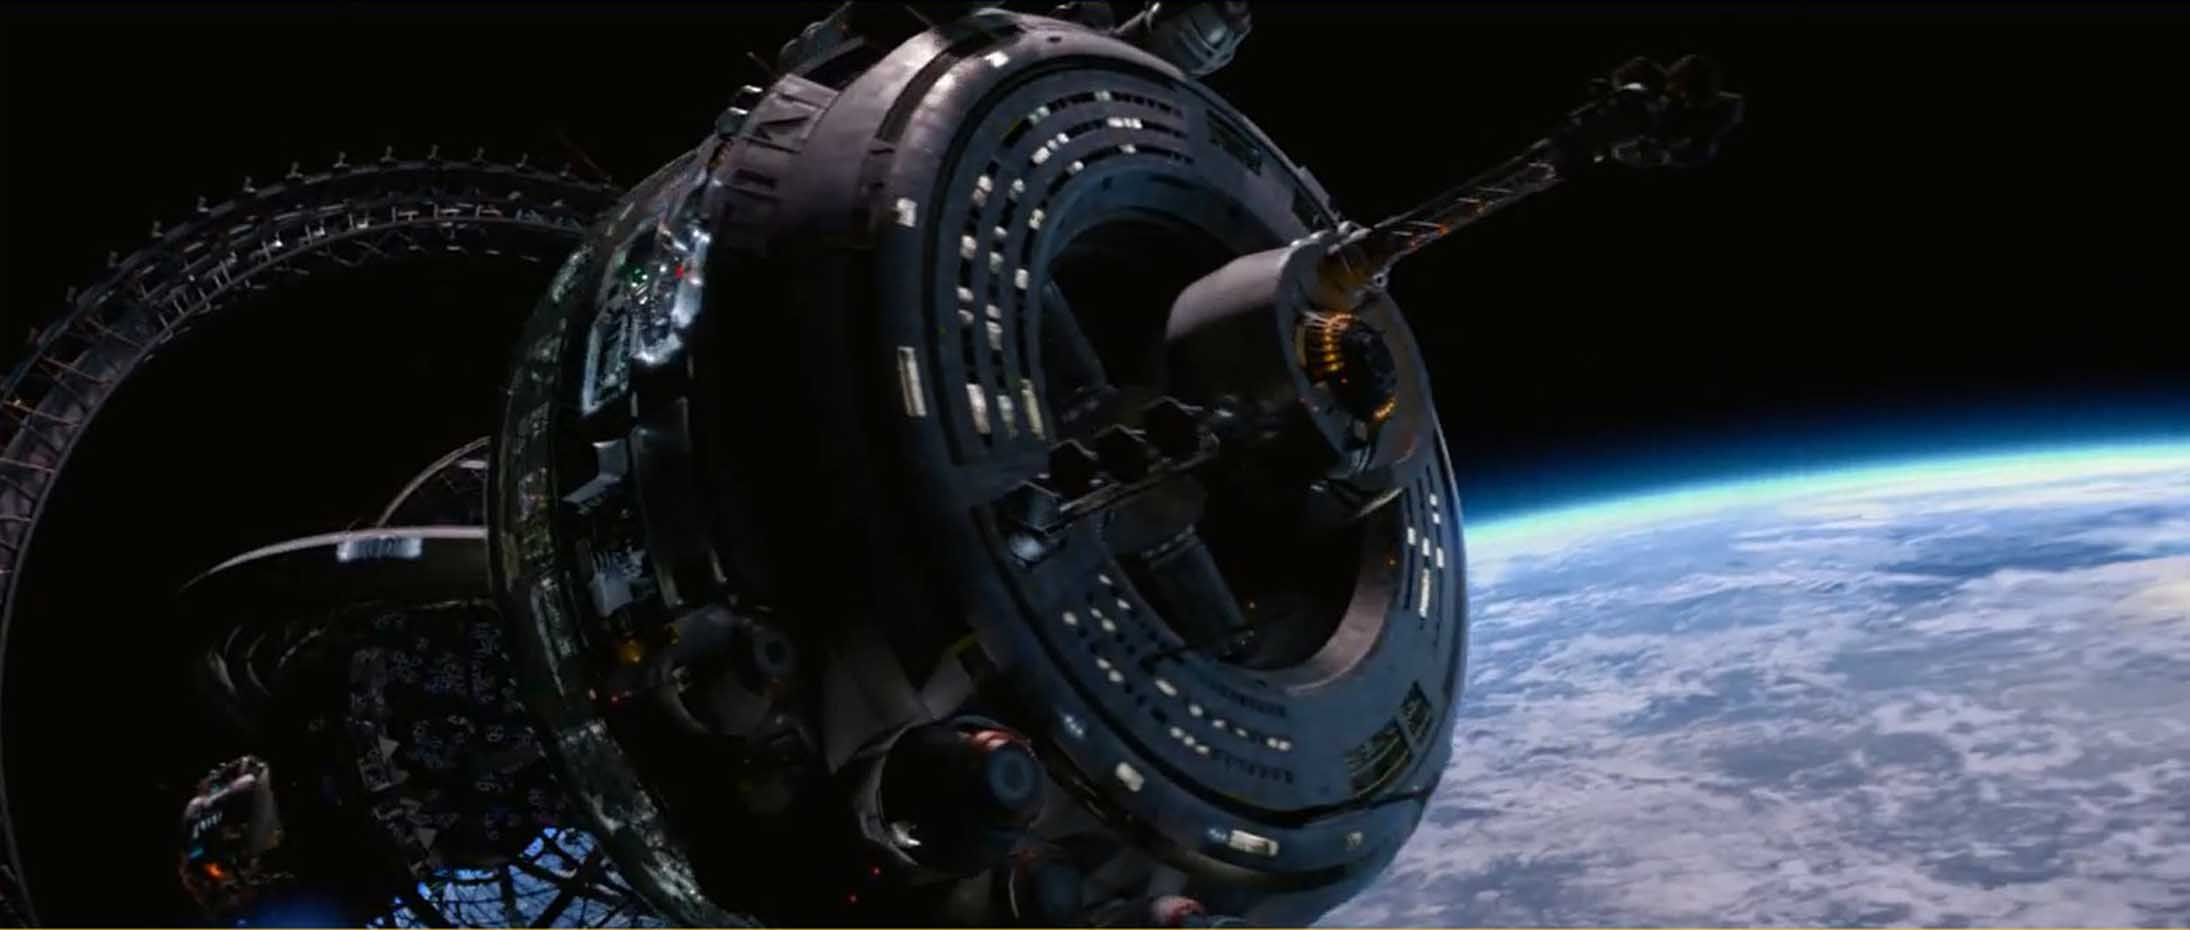 alien movie space station - photo #2